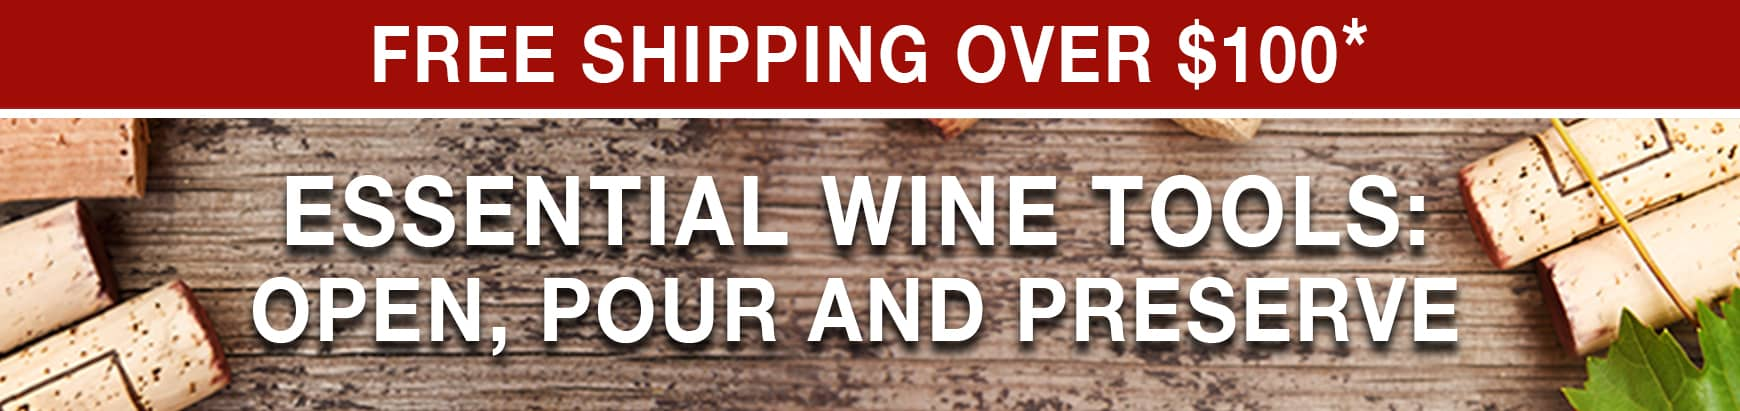 Essential Wine Tools: Open, Pour and Preserve - Free Shipping Over $100 Use Code: FS21W